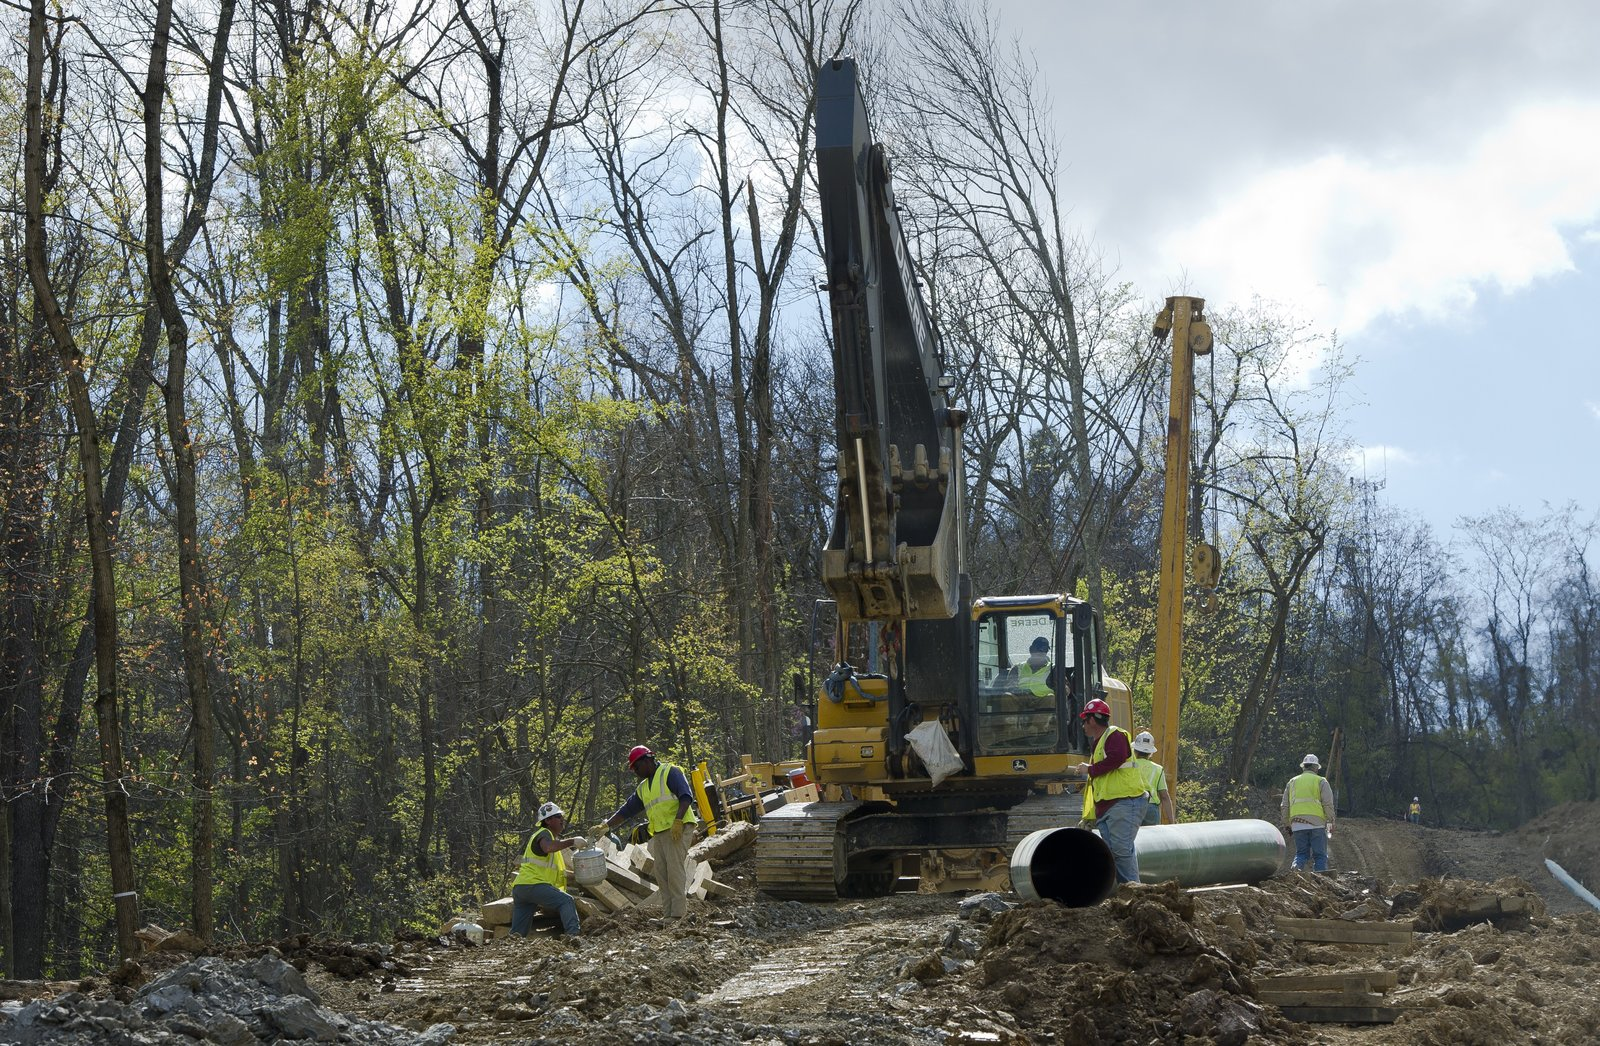 Pipelines in Pennsylvania may face new legal challenges